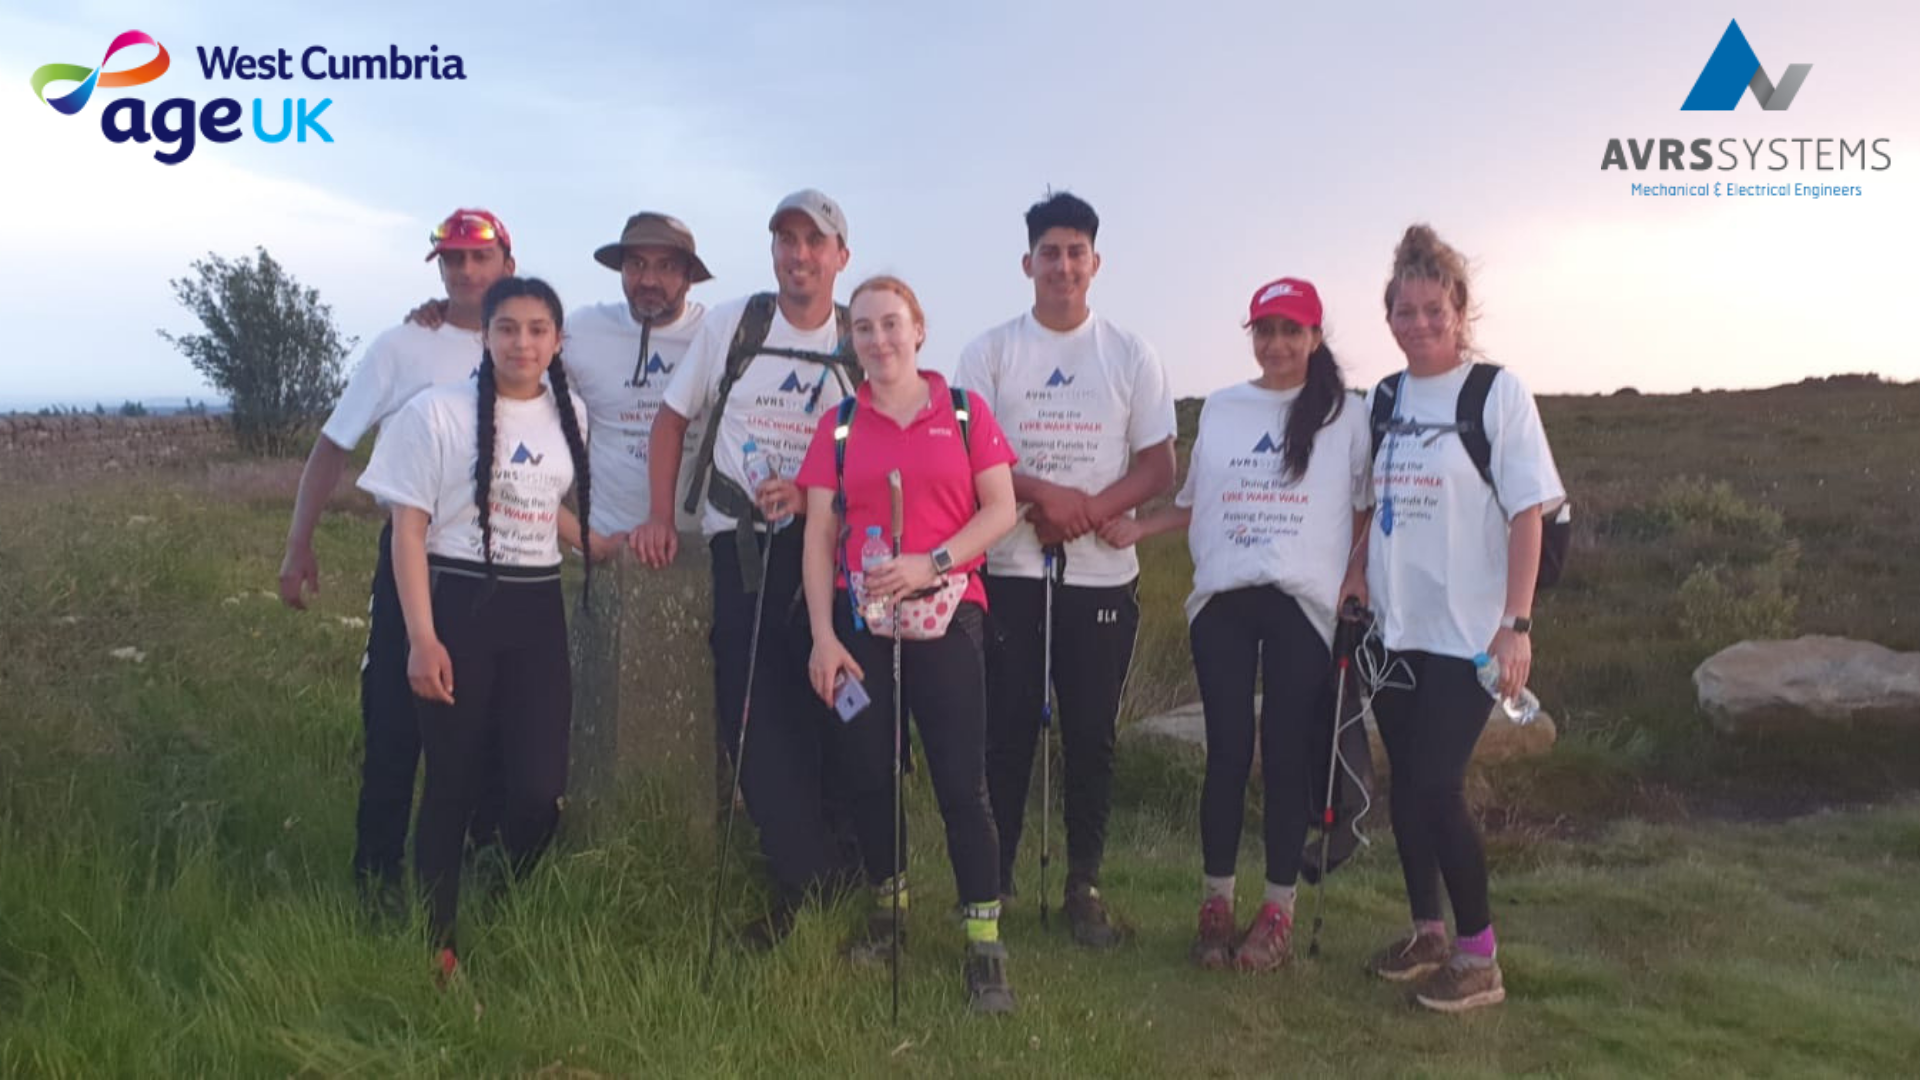 This image is of AVRS team members who completed the Lyke Wake Walk